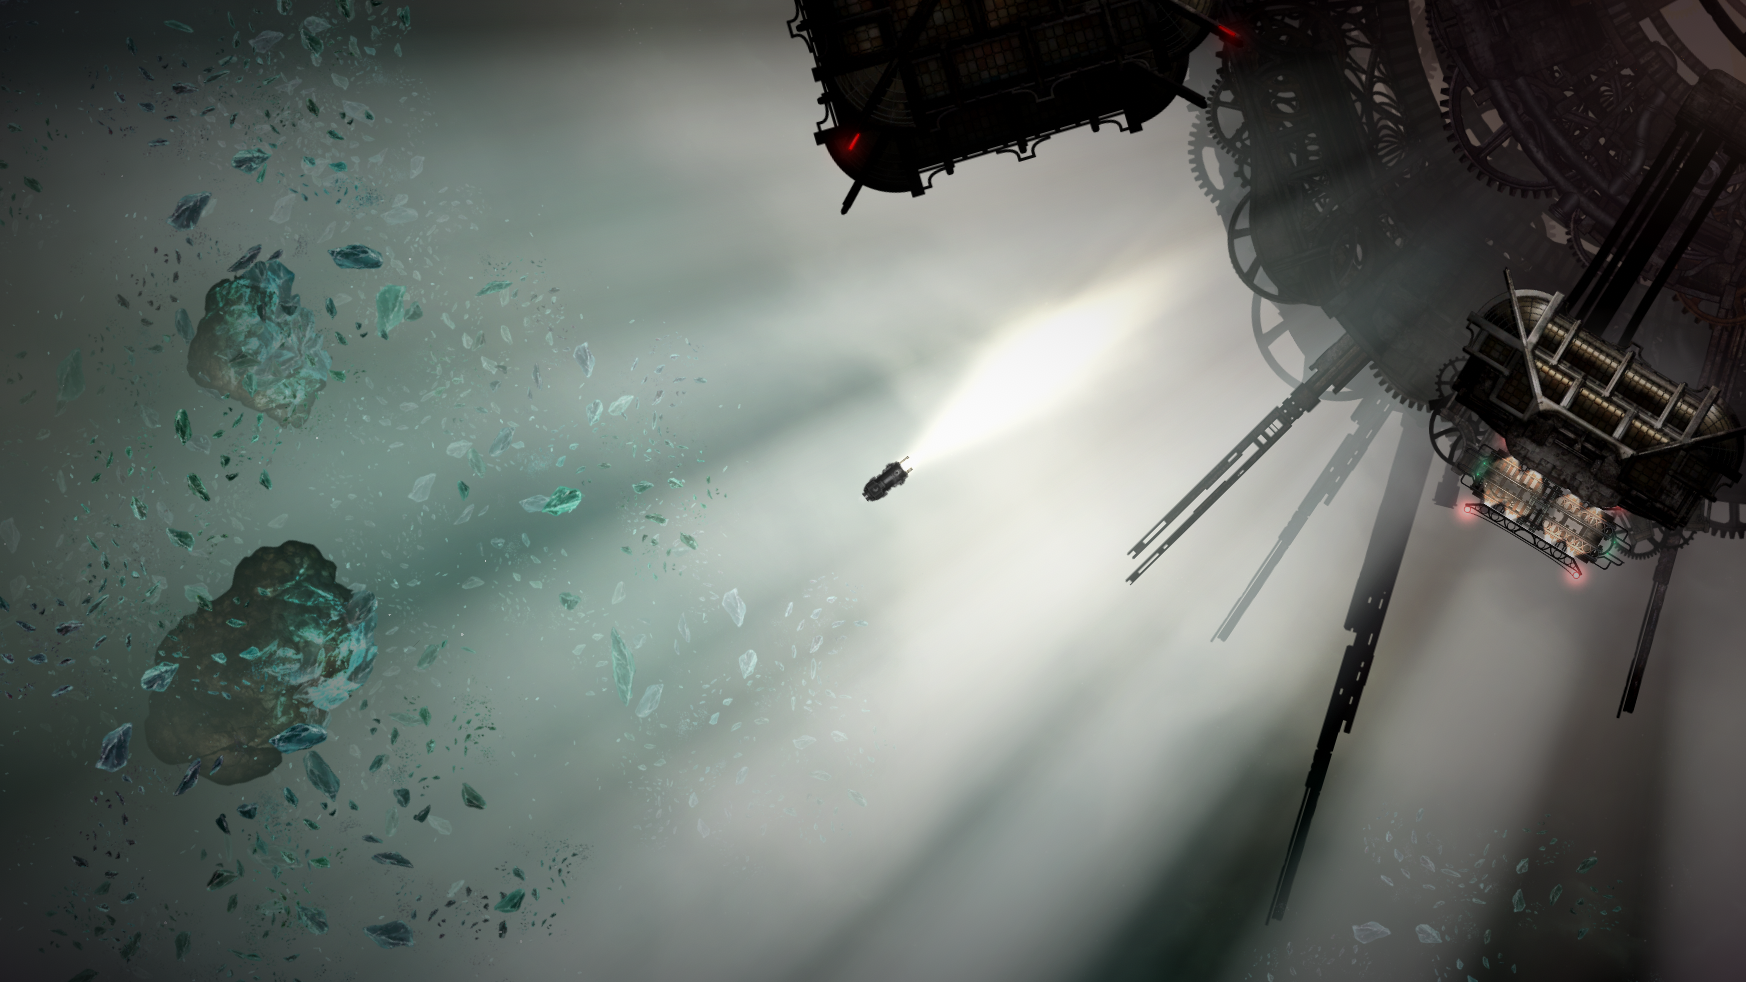 Sunless Skies has me hooked on dying among the stars